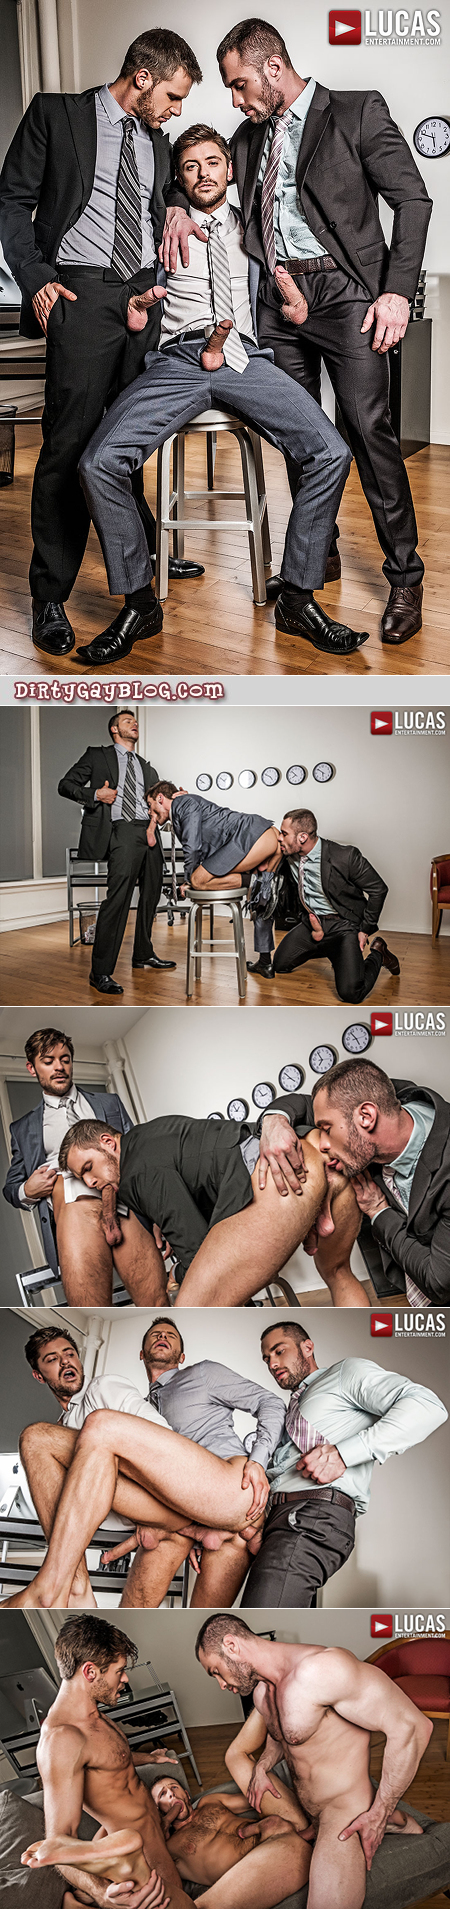 Three men in suits fucking each other bareback.